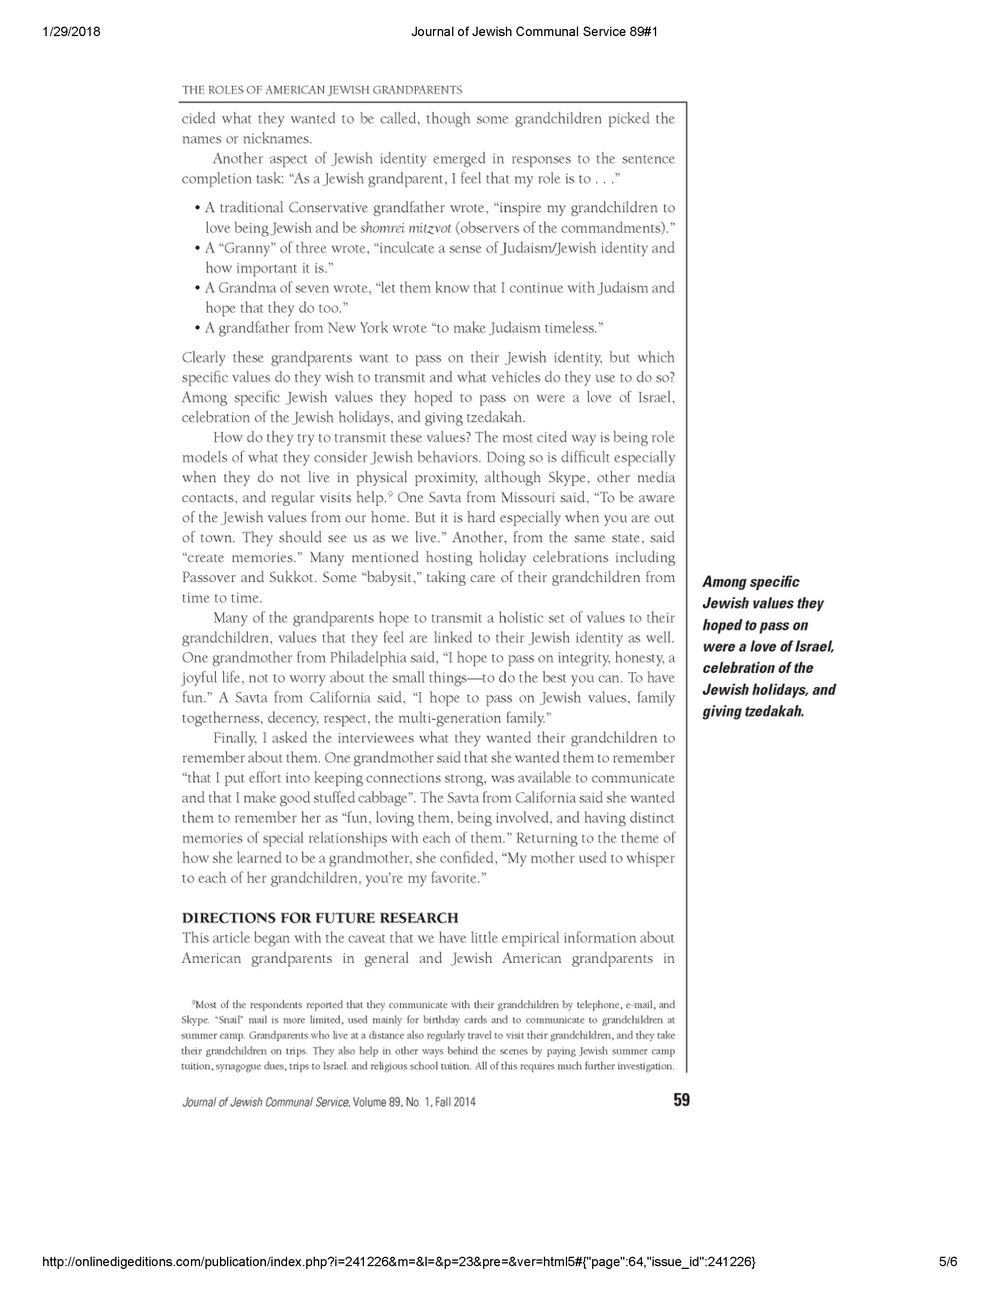 Journal of Jewish Communal Service 89#1_Page_5.jpg